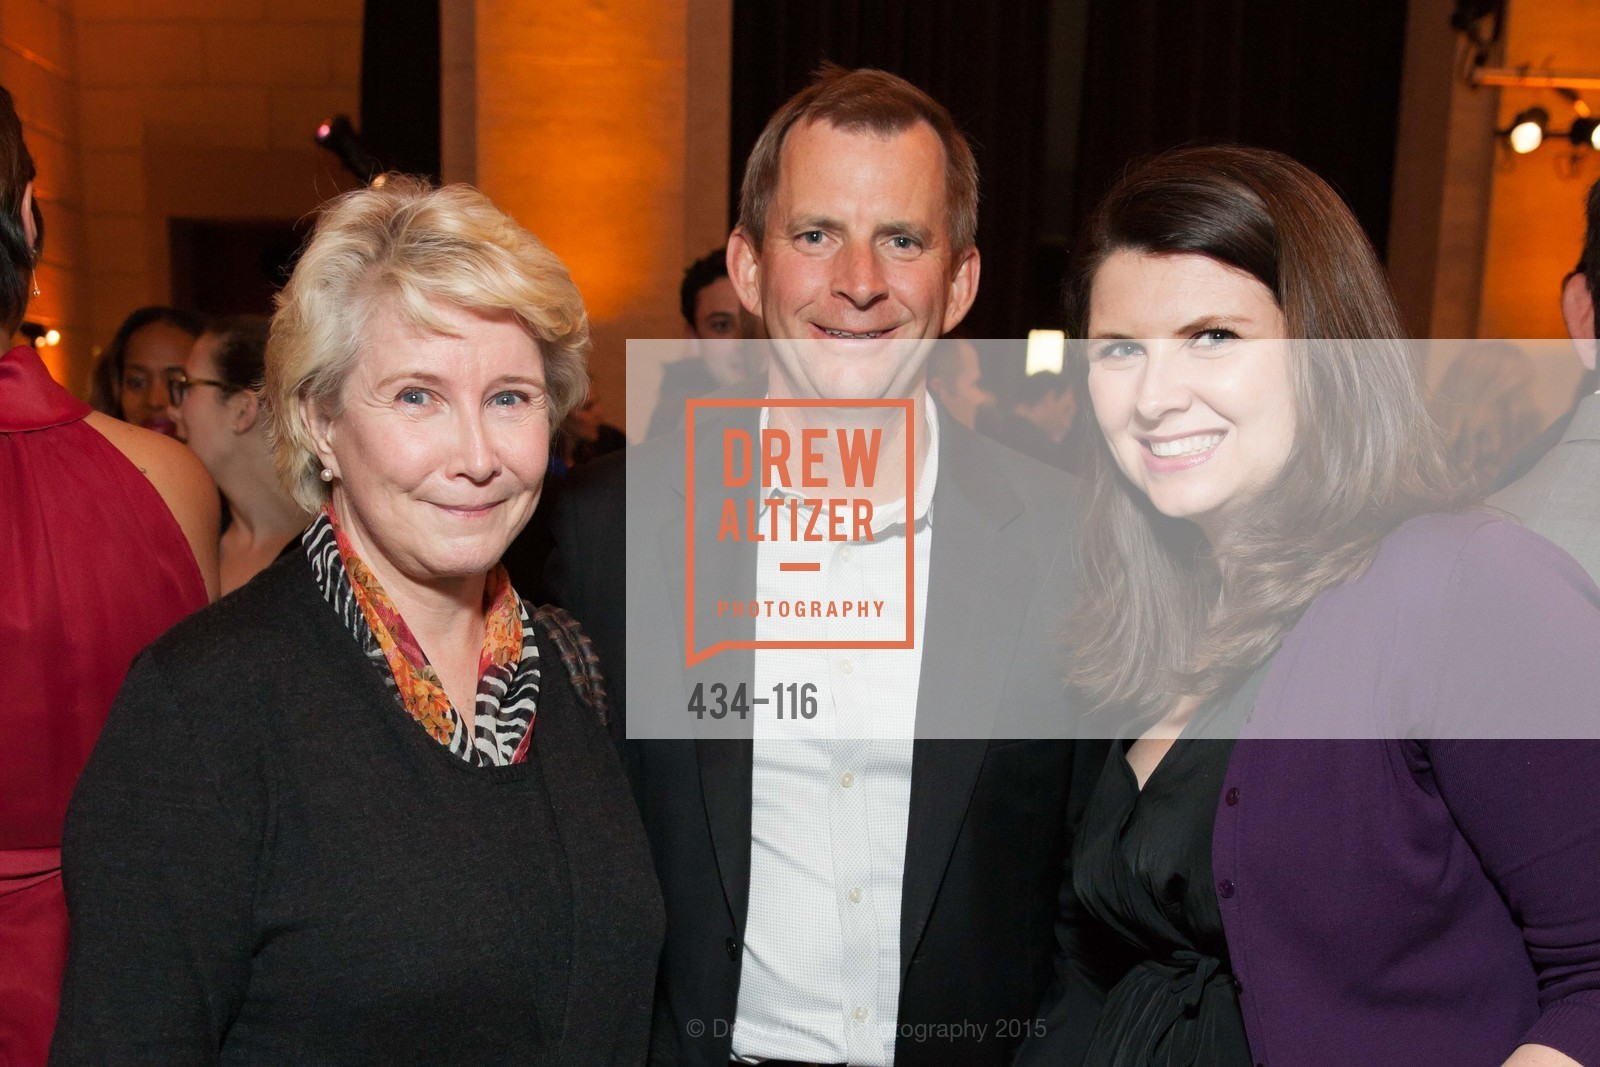 Beth Hunkapiller, Jed Wallis, Heather Vega, Aspire Public Schools 2nd Annual Gala, Bently Reserve, May 20th, 2015,Drew Altizer, Drew Altizer Photography, full-service agency, private events, San Francisco photographer, photographer california